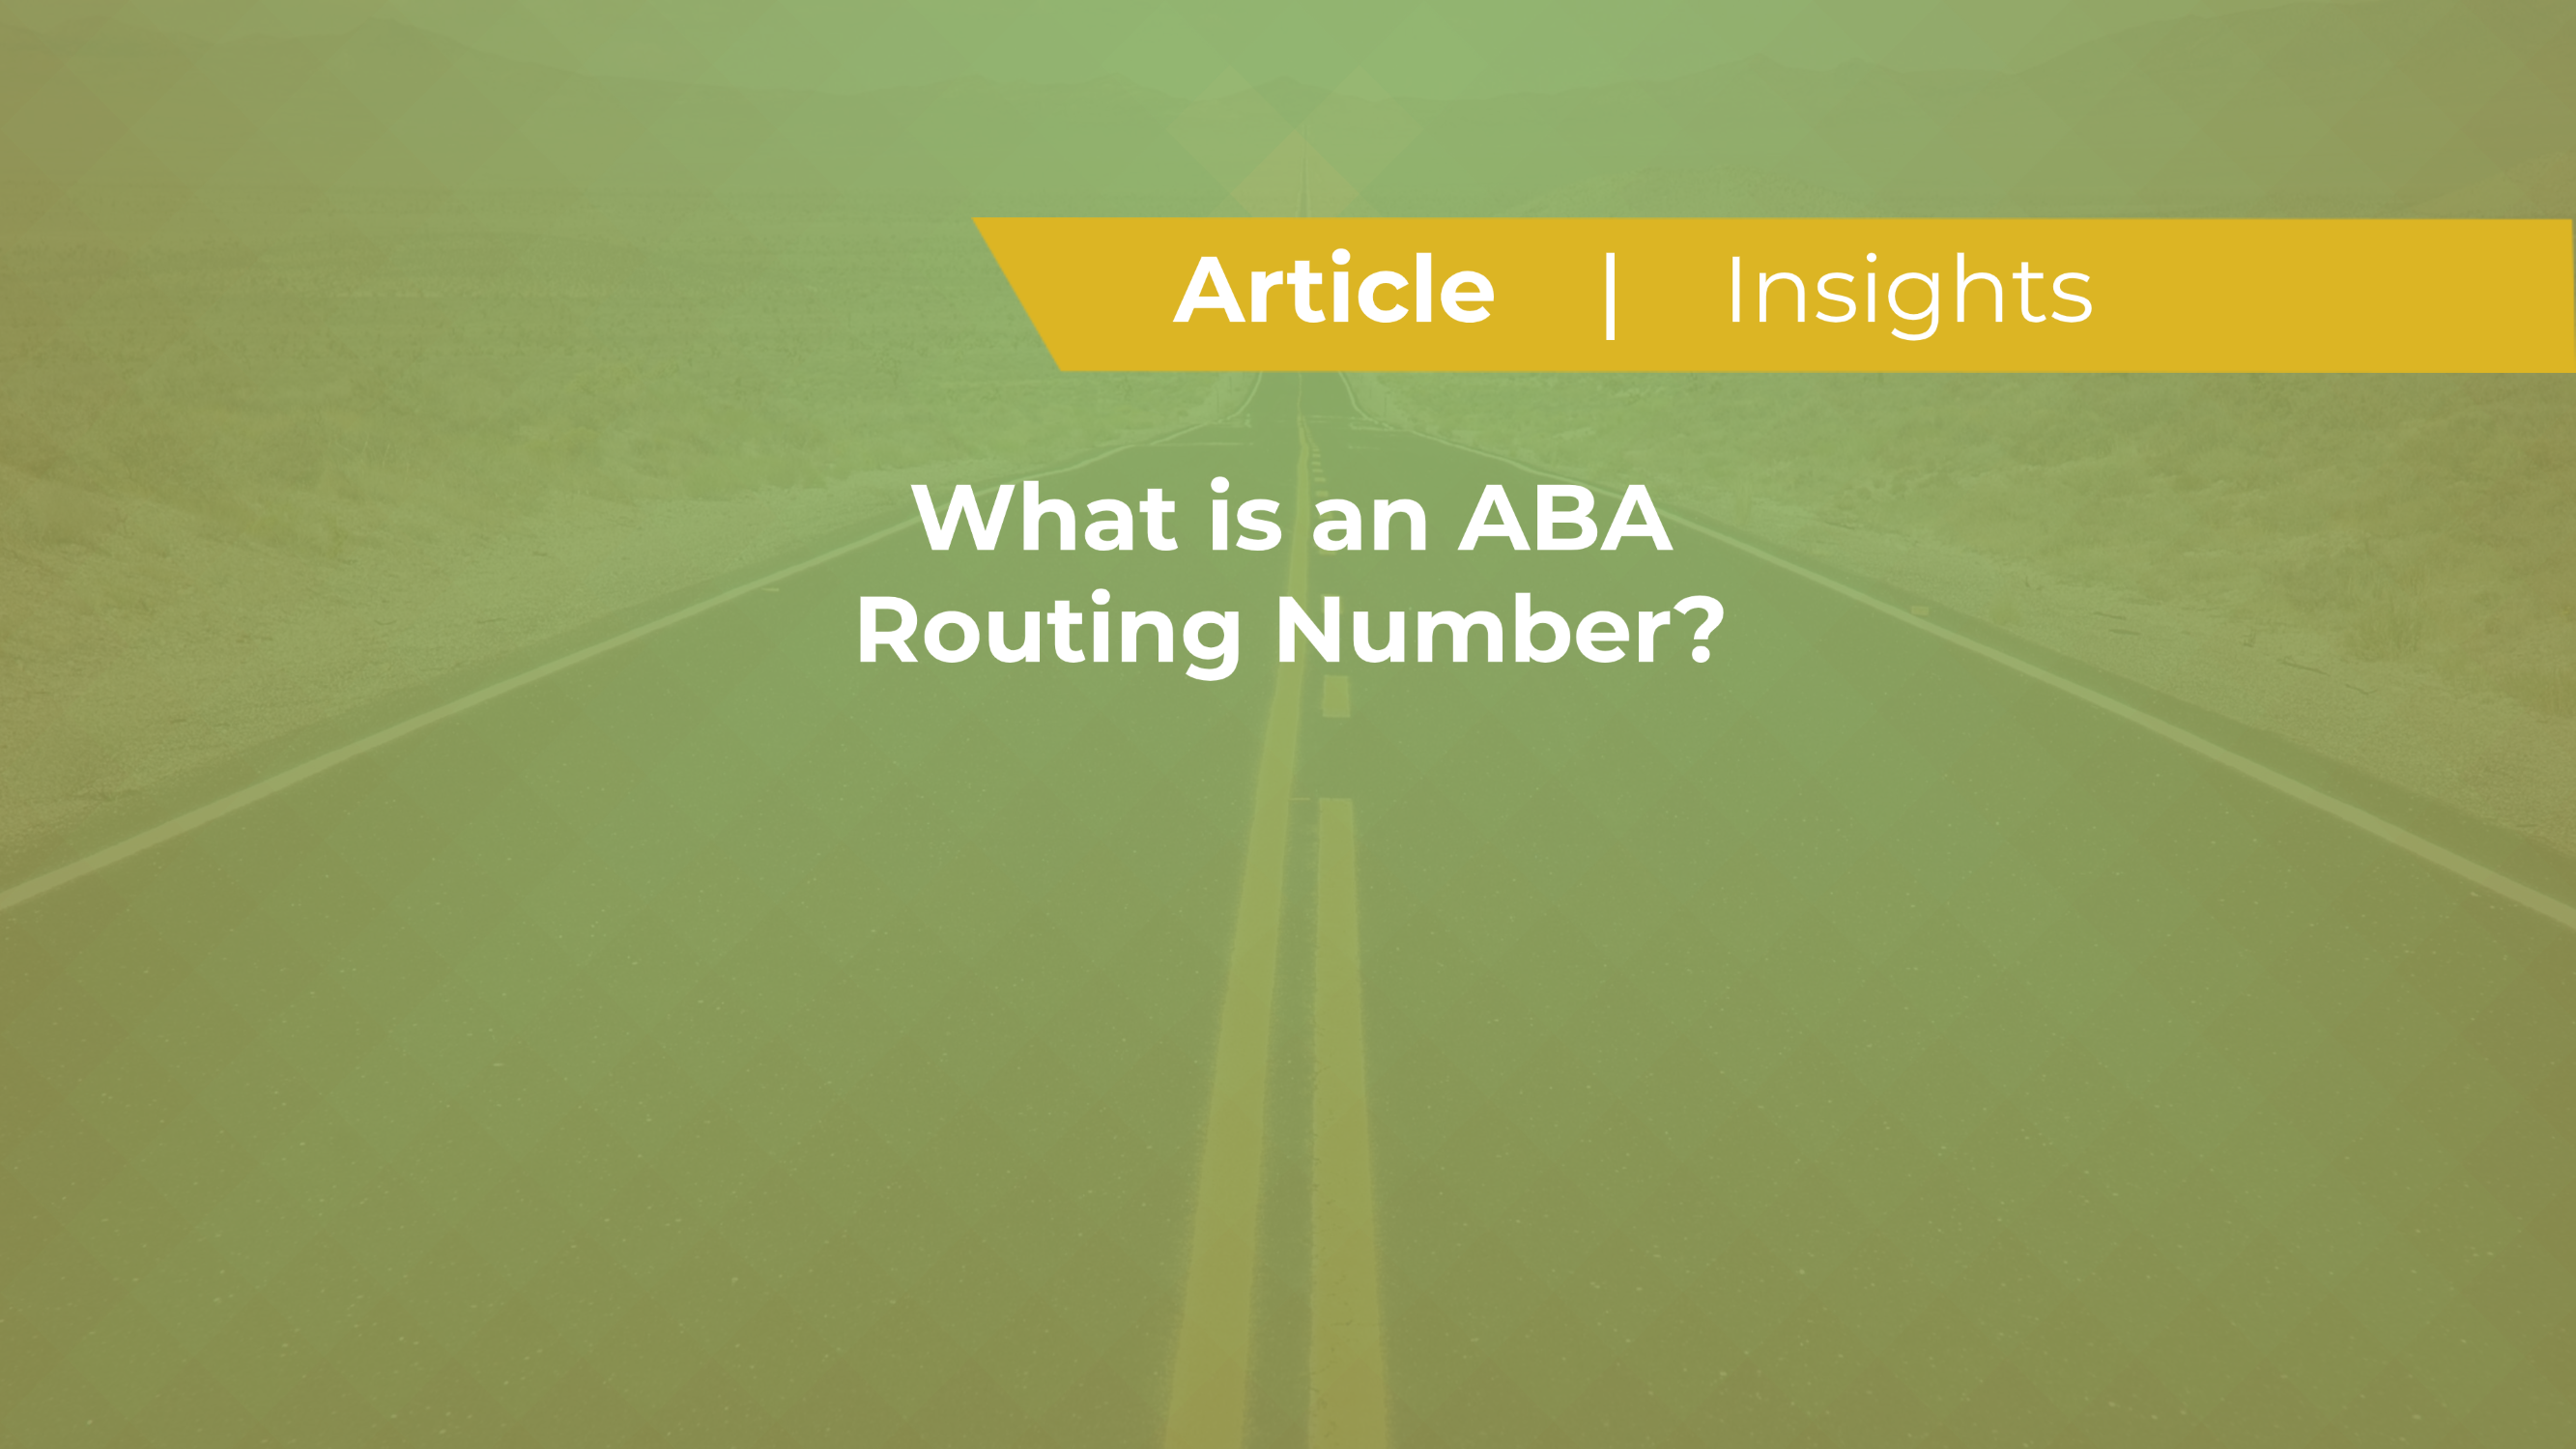 What is an ABA Routing Number